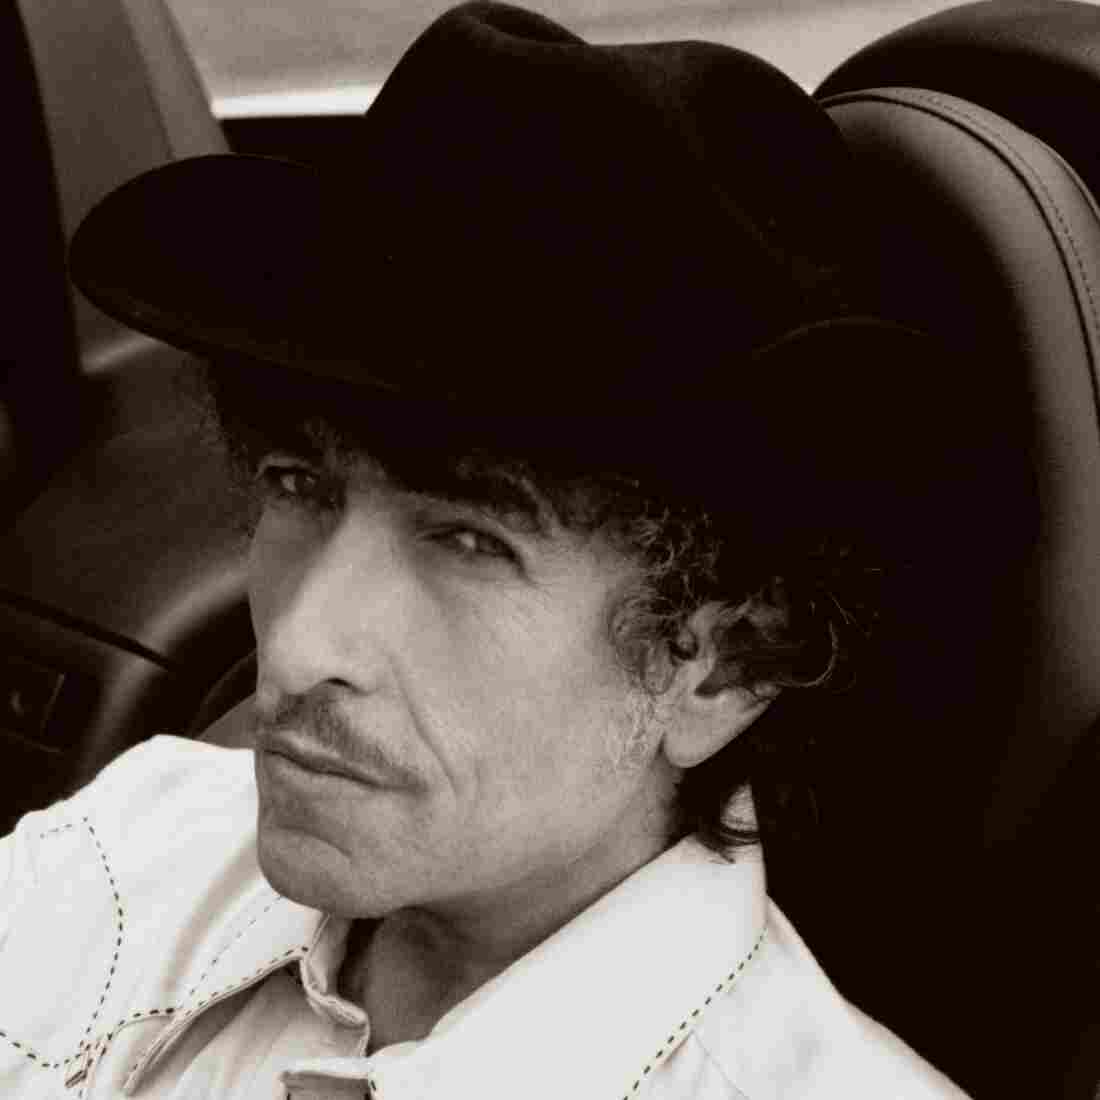 Bob Dylan's 35th studio album, Tempest, will be released on Sept. 11.